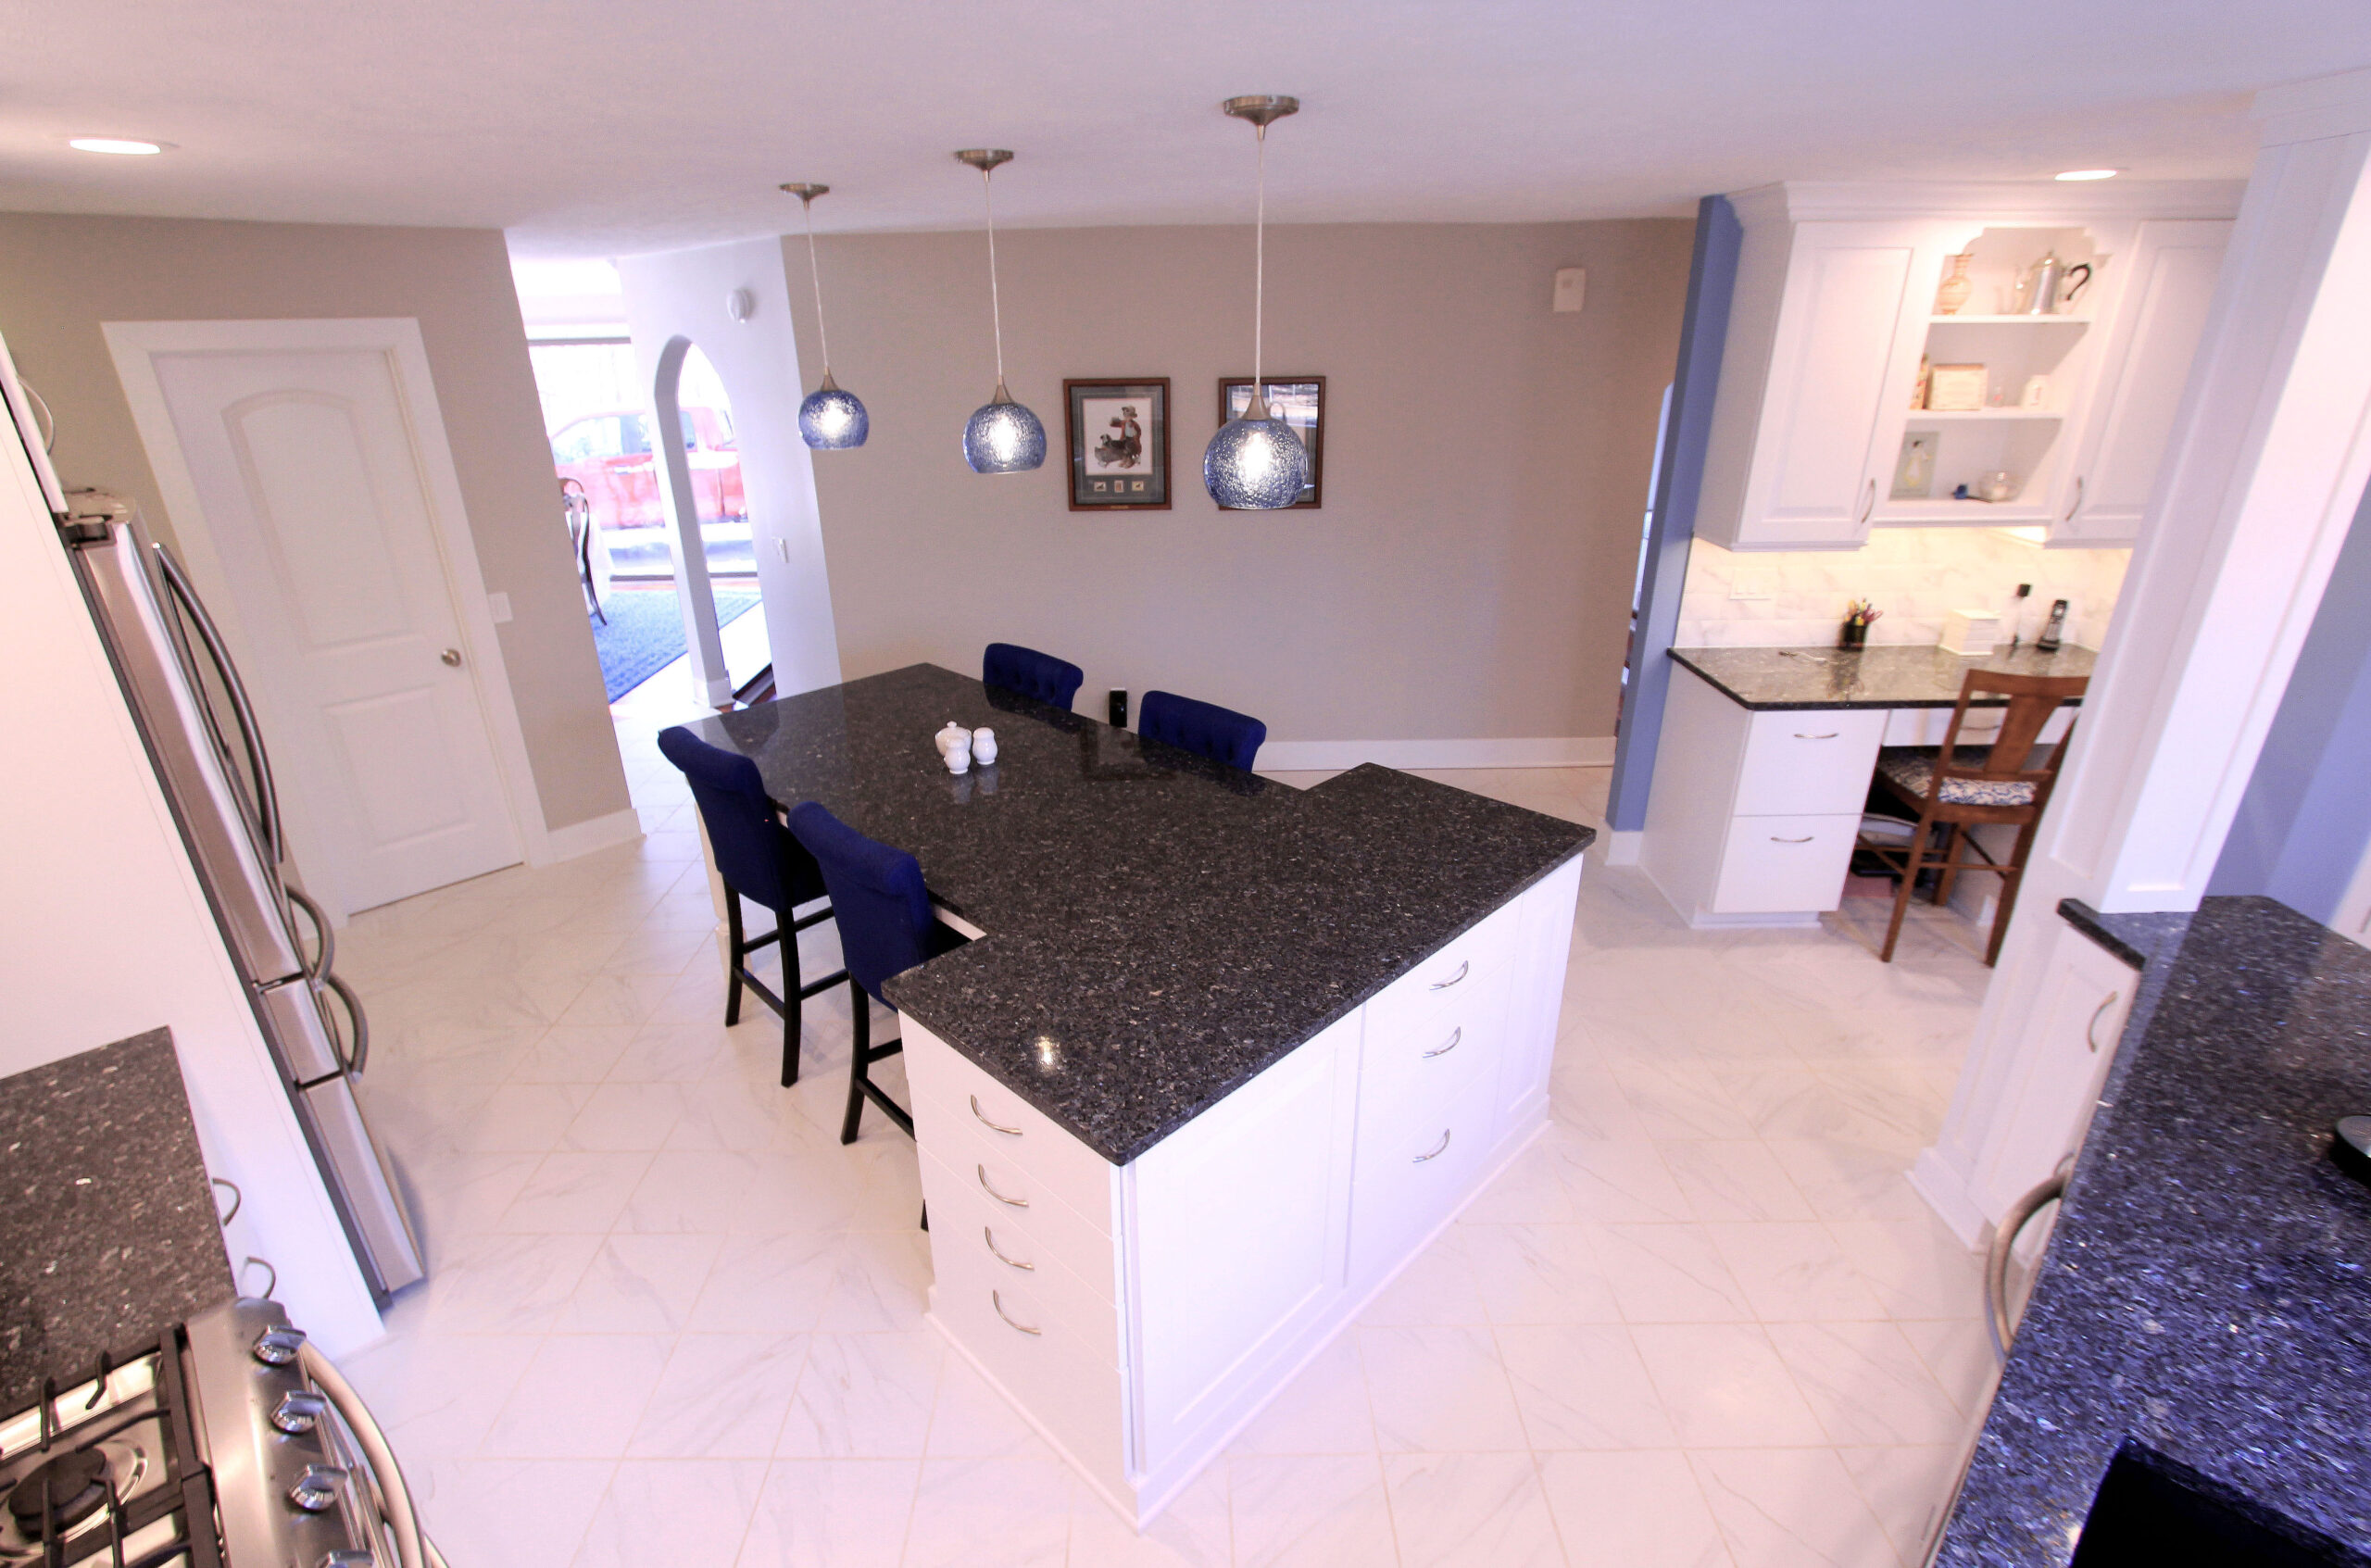 Cascade Kitchen Finish Island with Table Extension and Seating